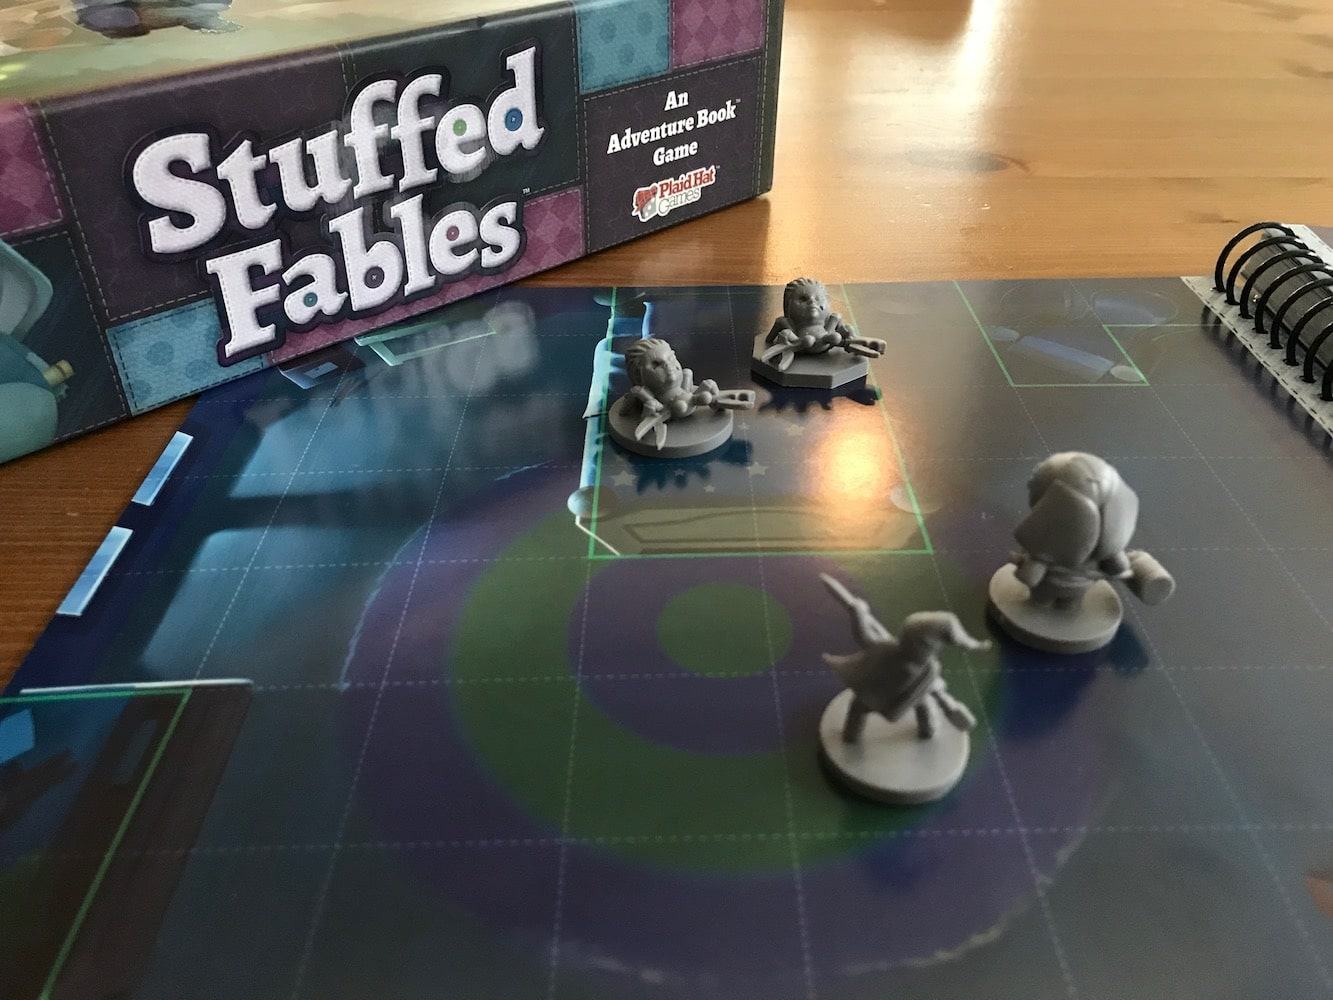 A review of Stuffed Fables, the new board game designed for parents to play with their children. - Nerds on Earth image